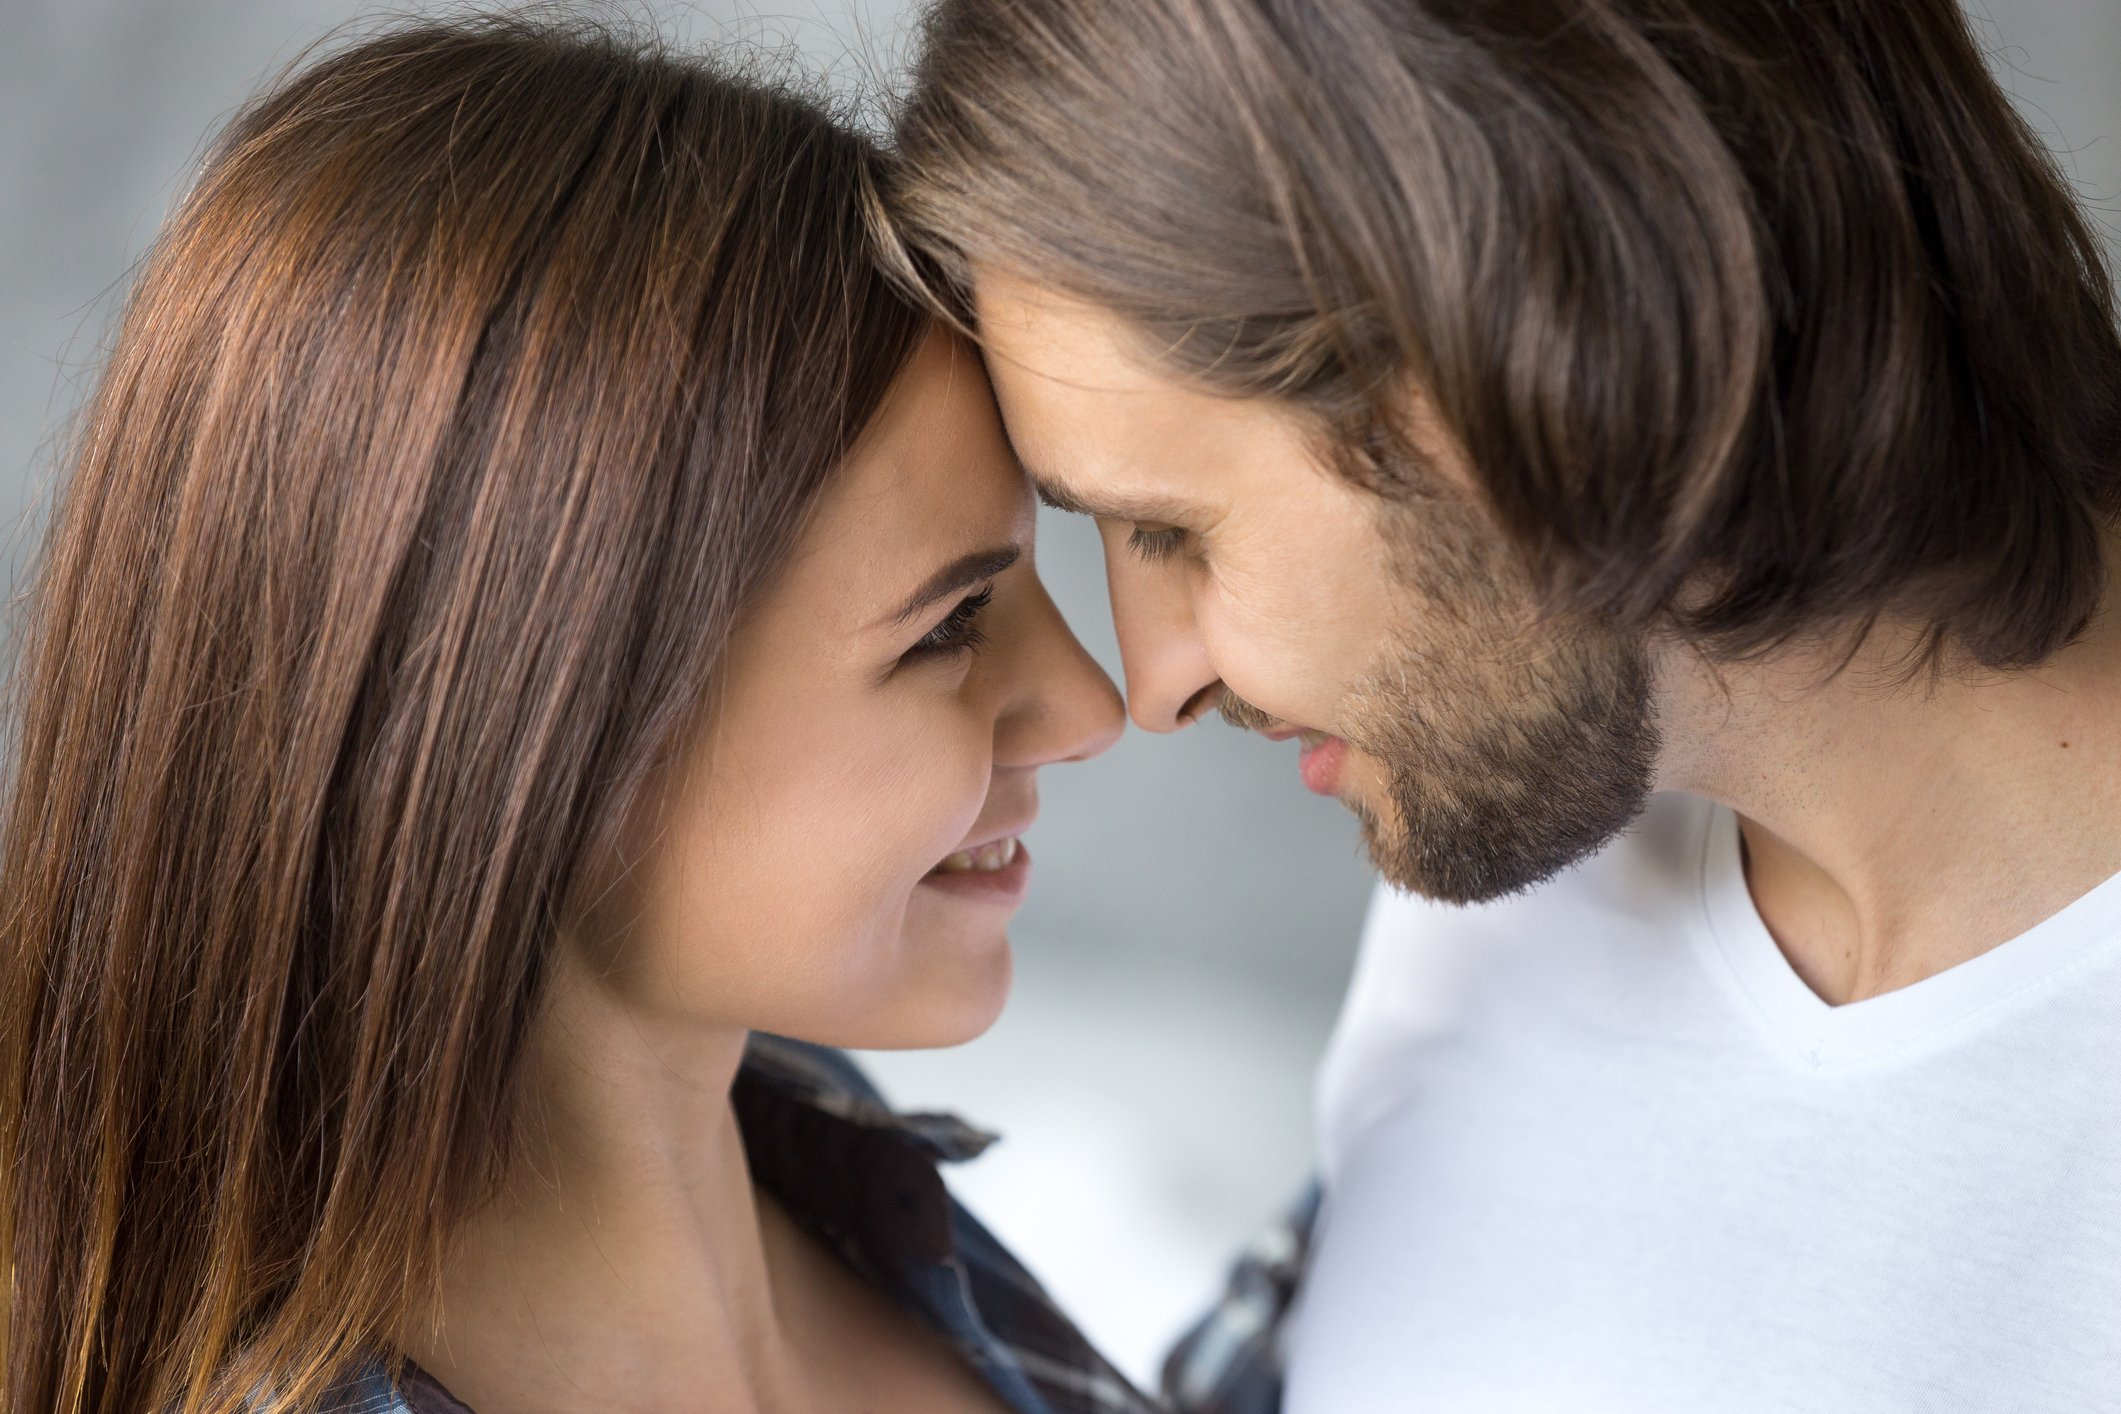 Young couple nose to nose and smiling.